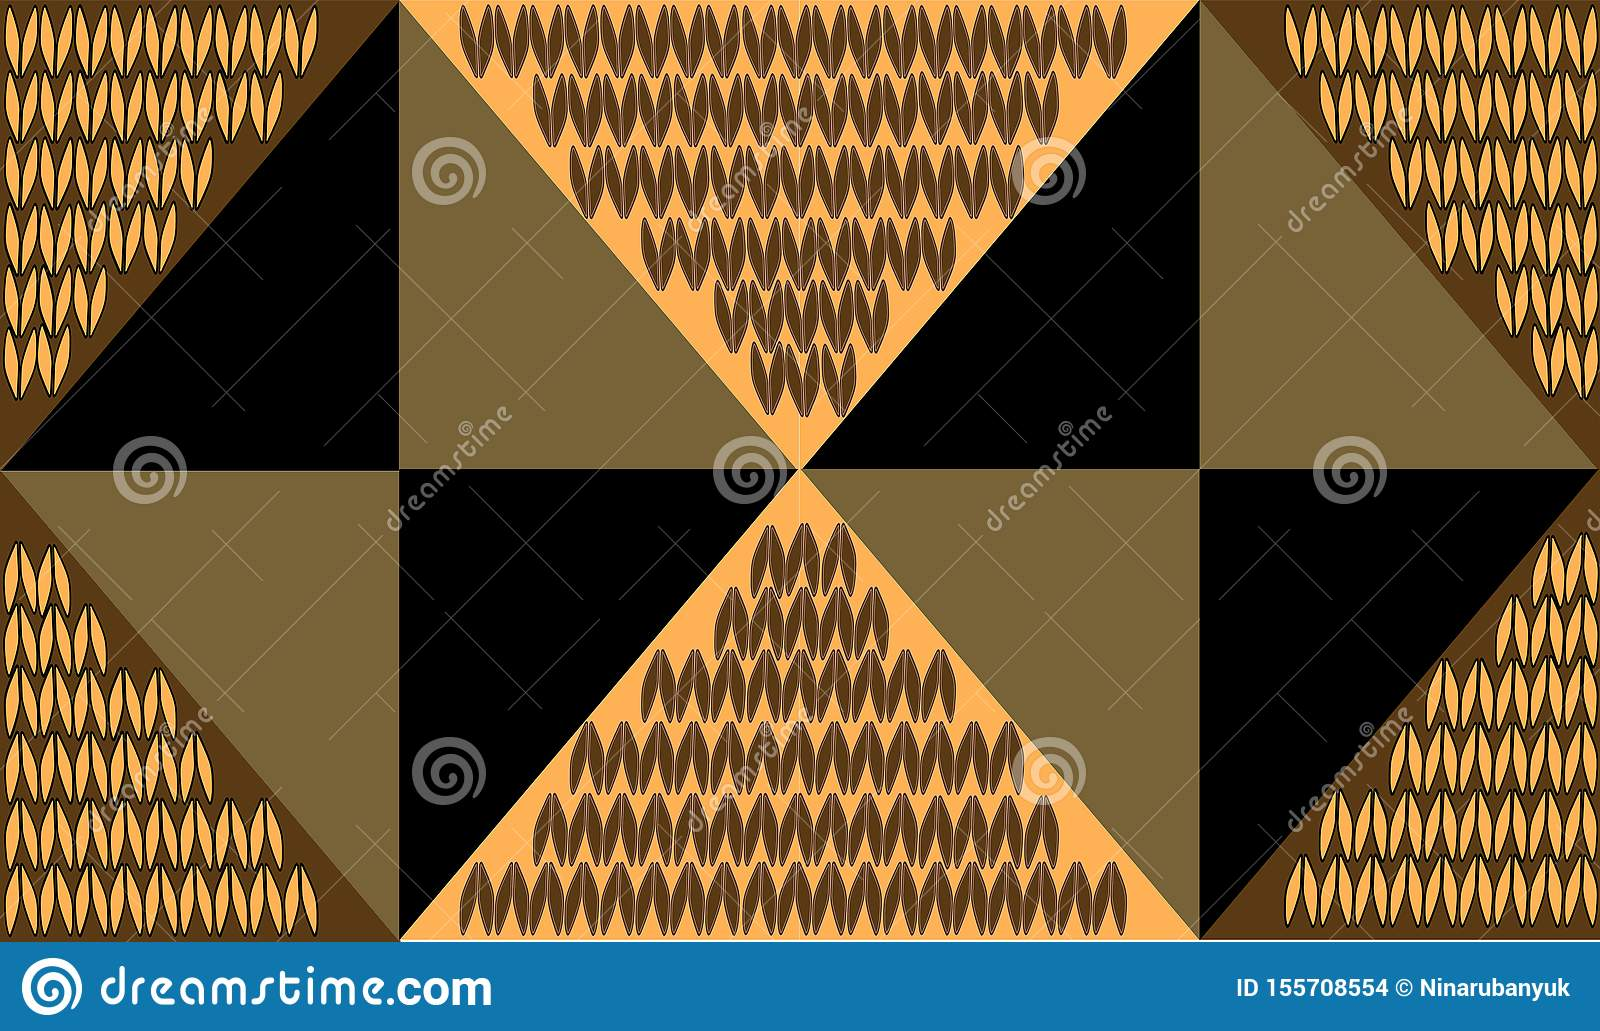 Gold background from triangles with knitting decor